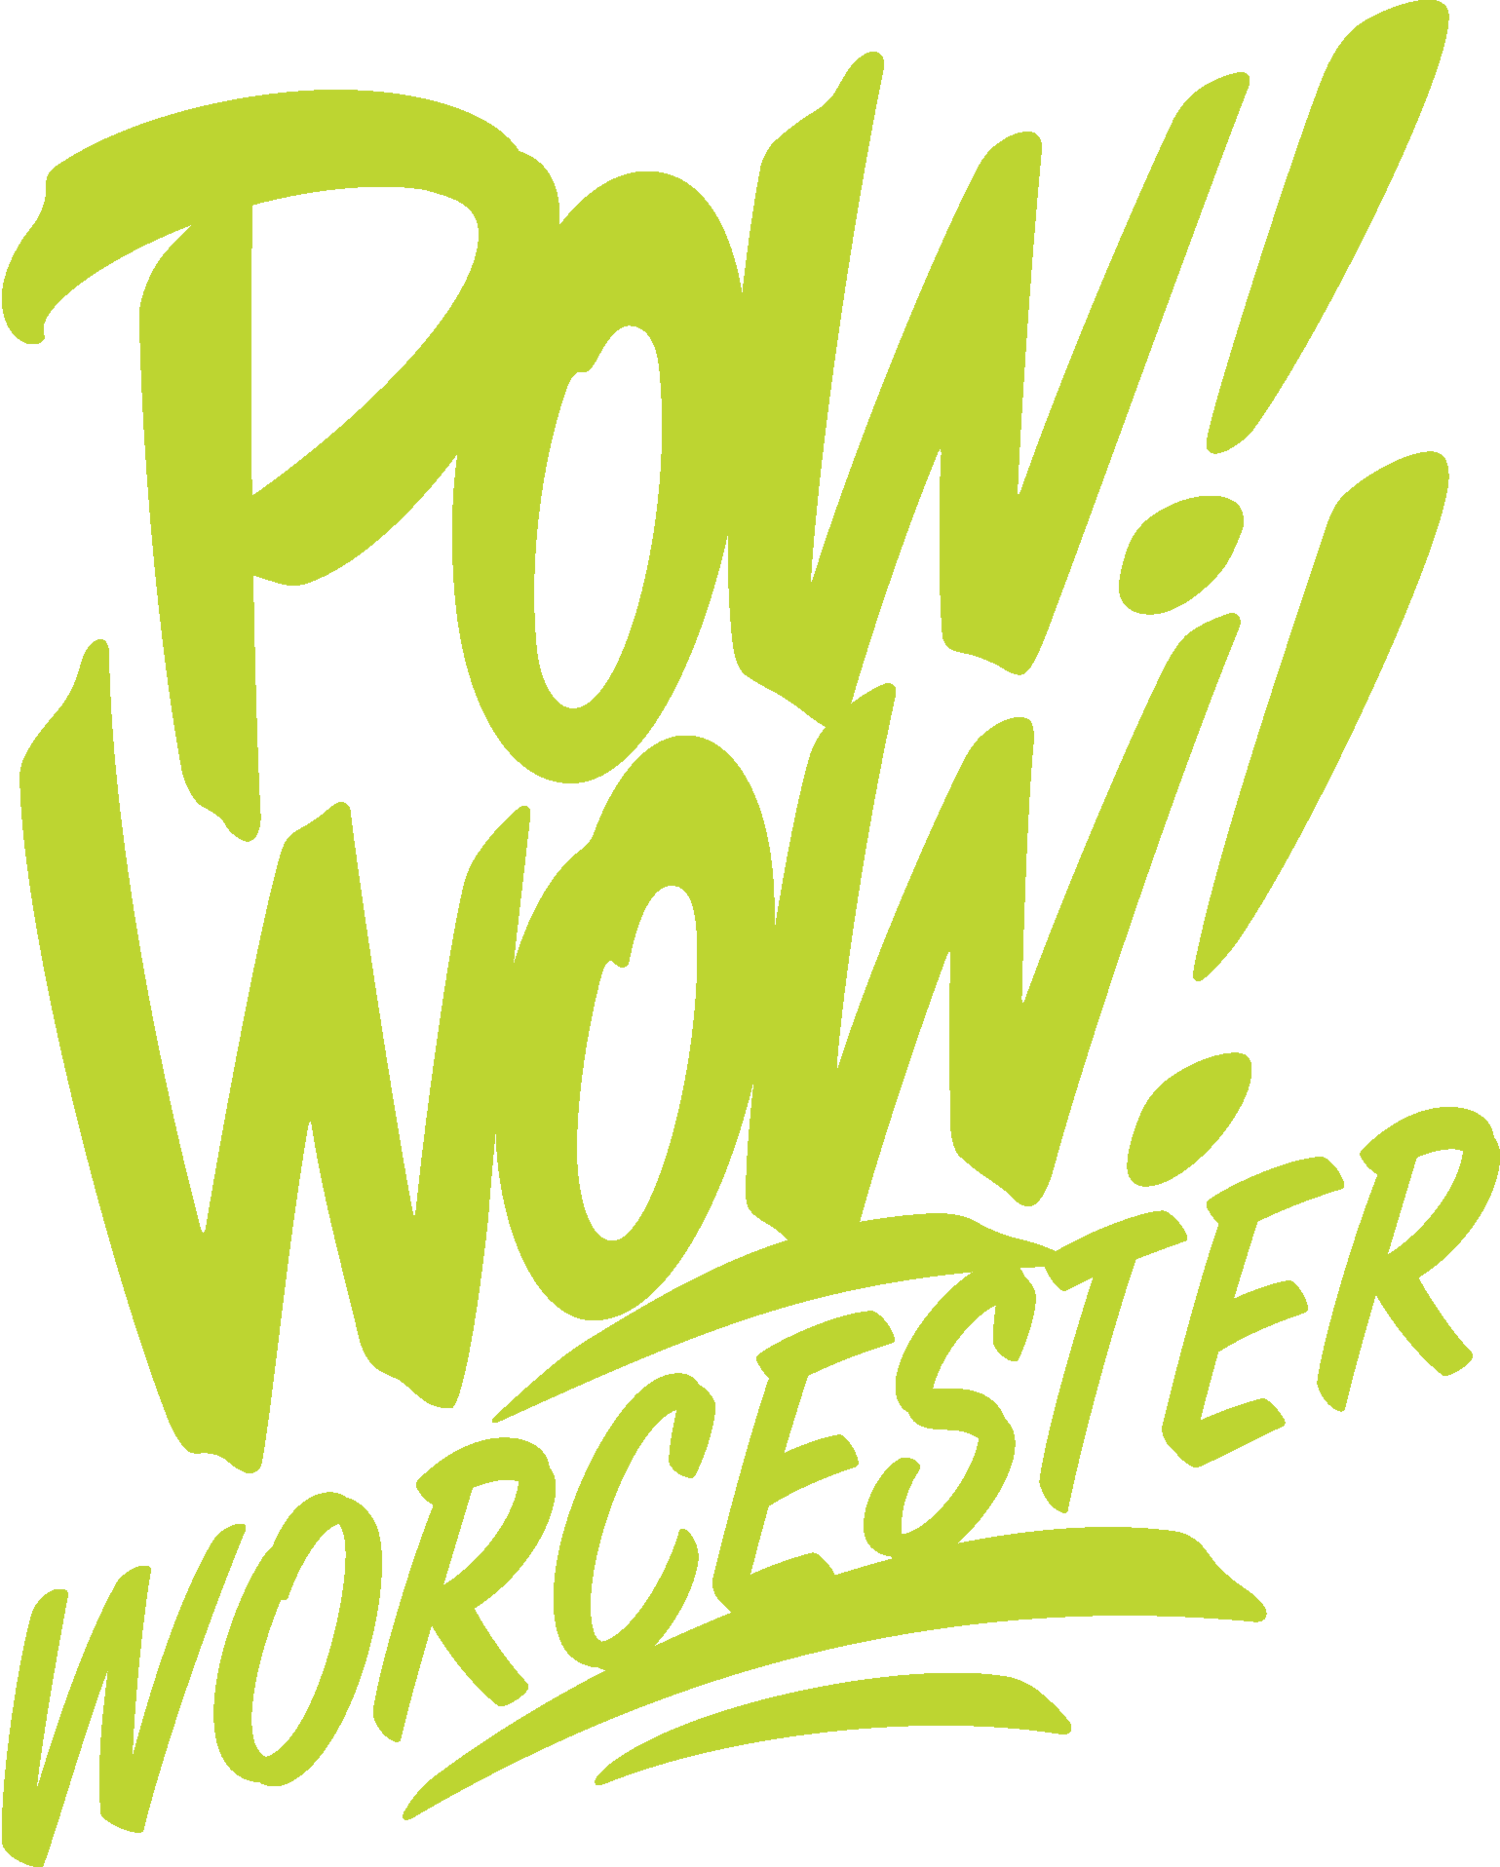 POW! WOW! Worcester